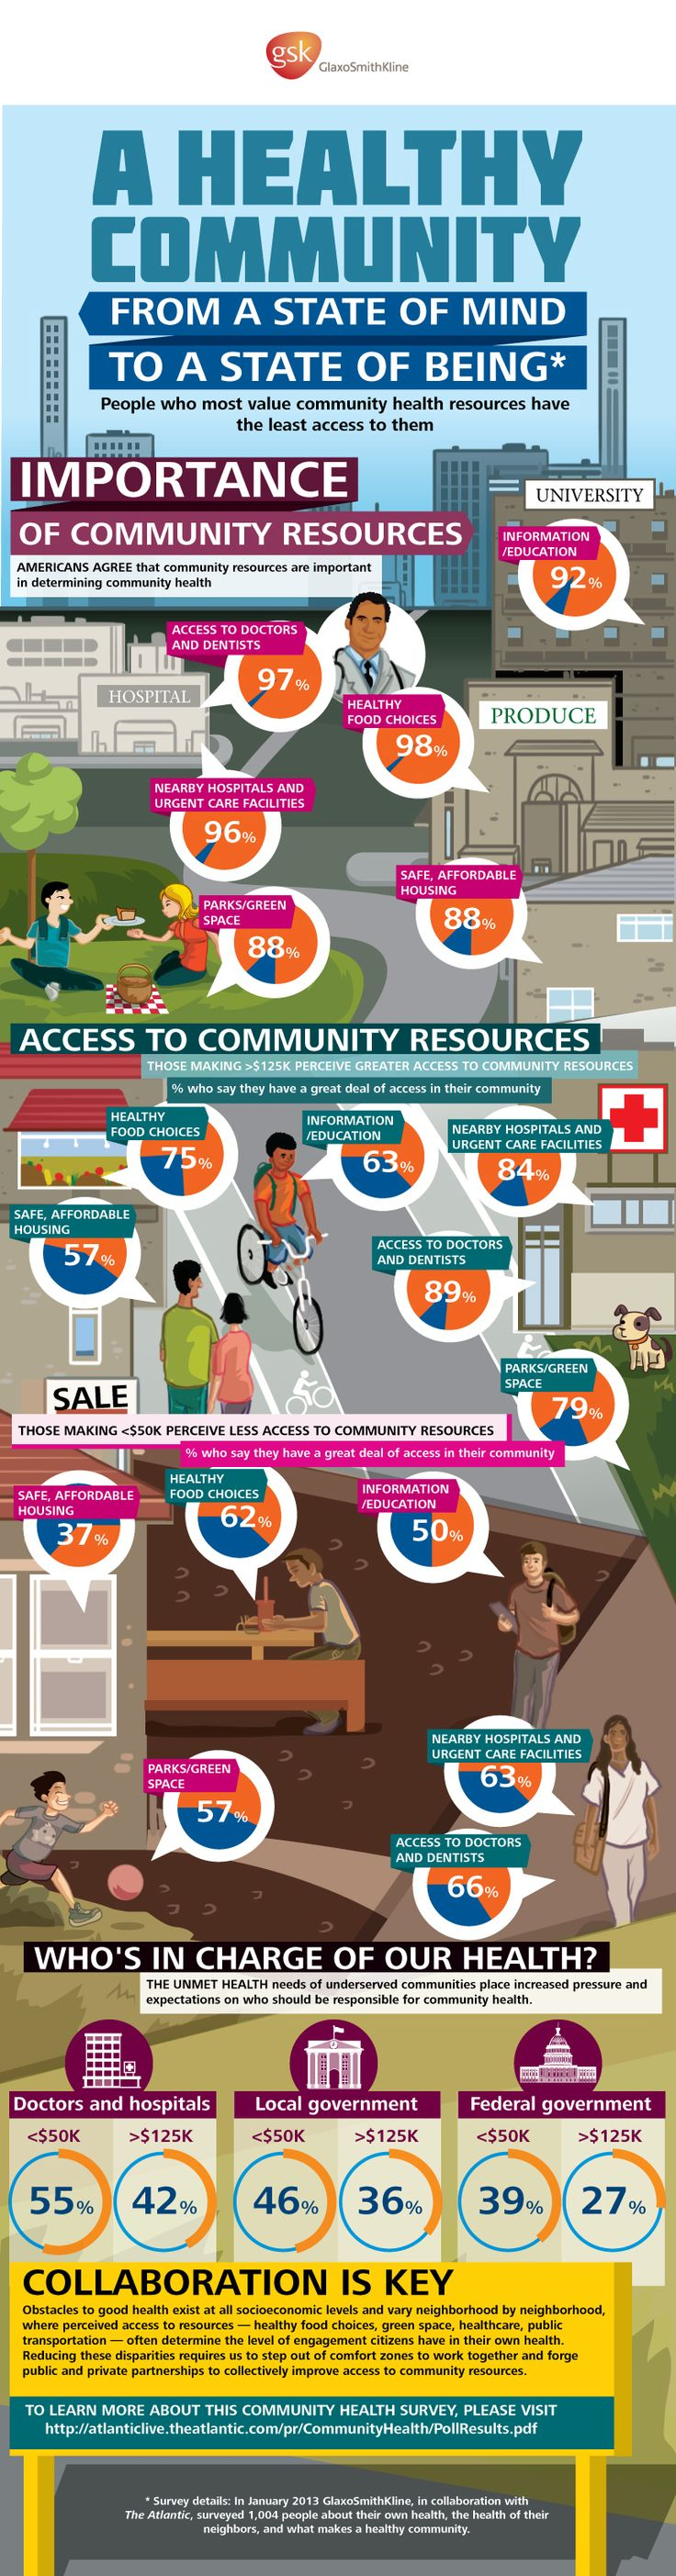 Infographic: Healthy Community Survey courtesy of @DanDunlop